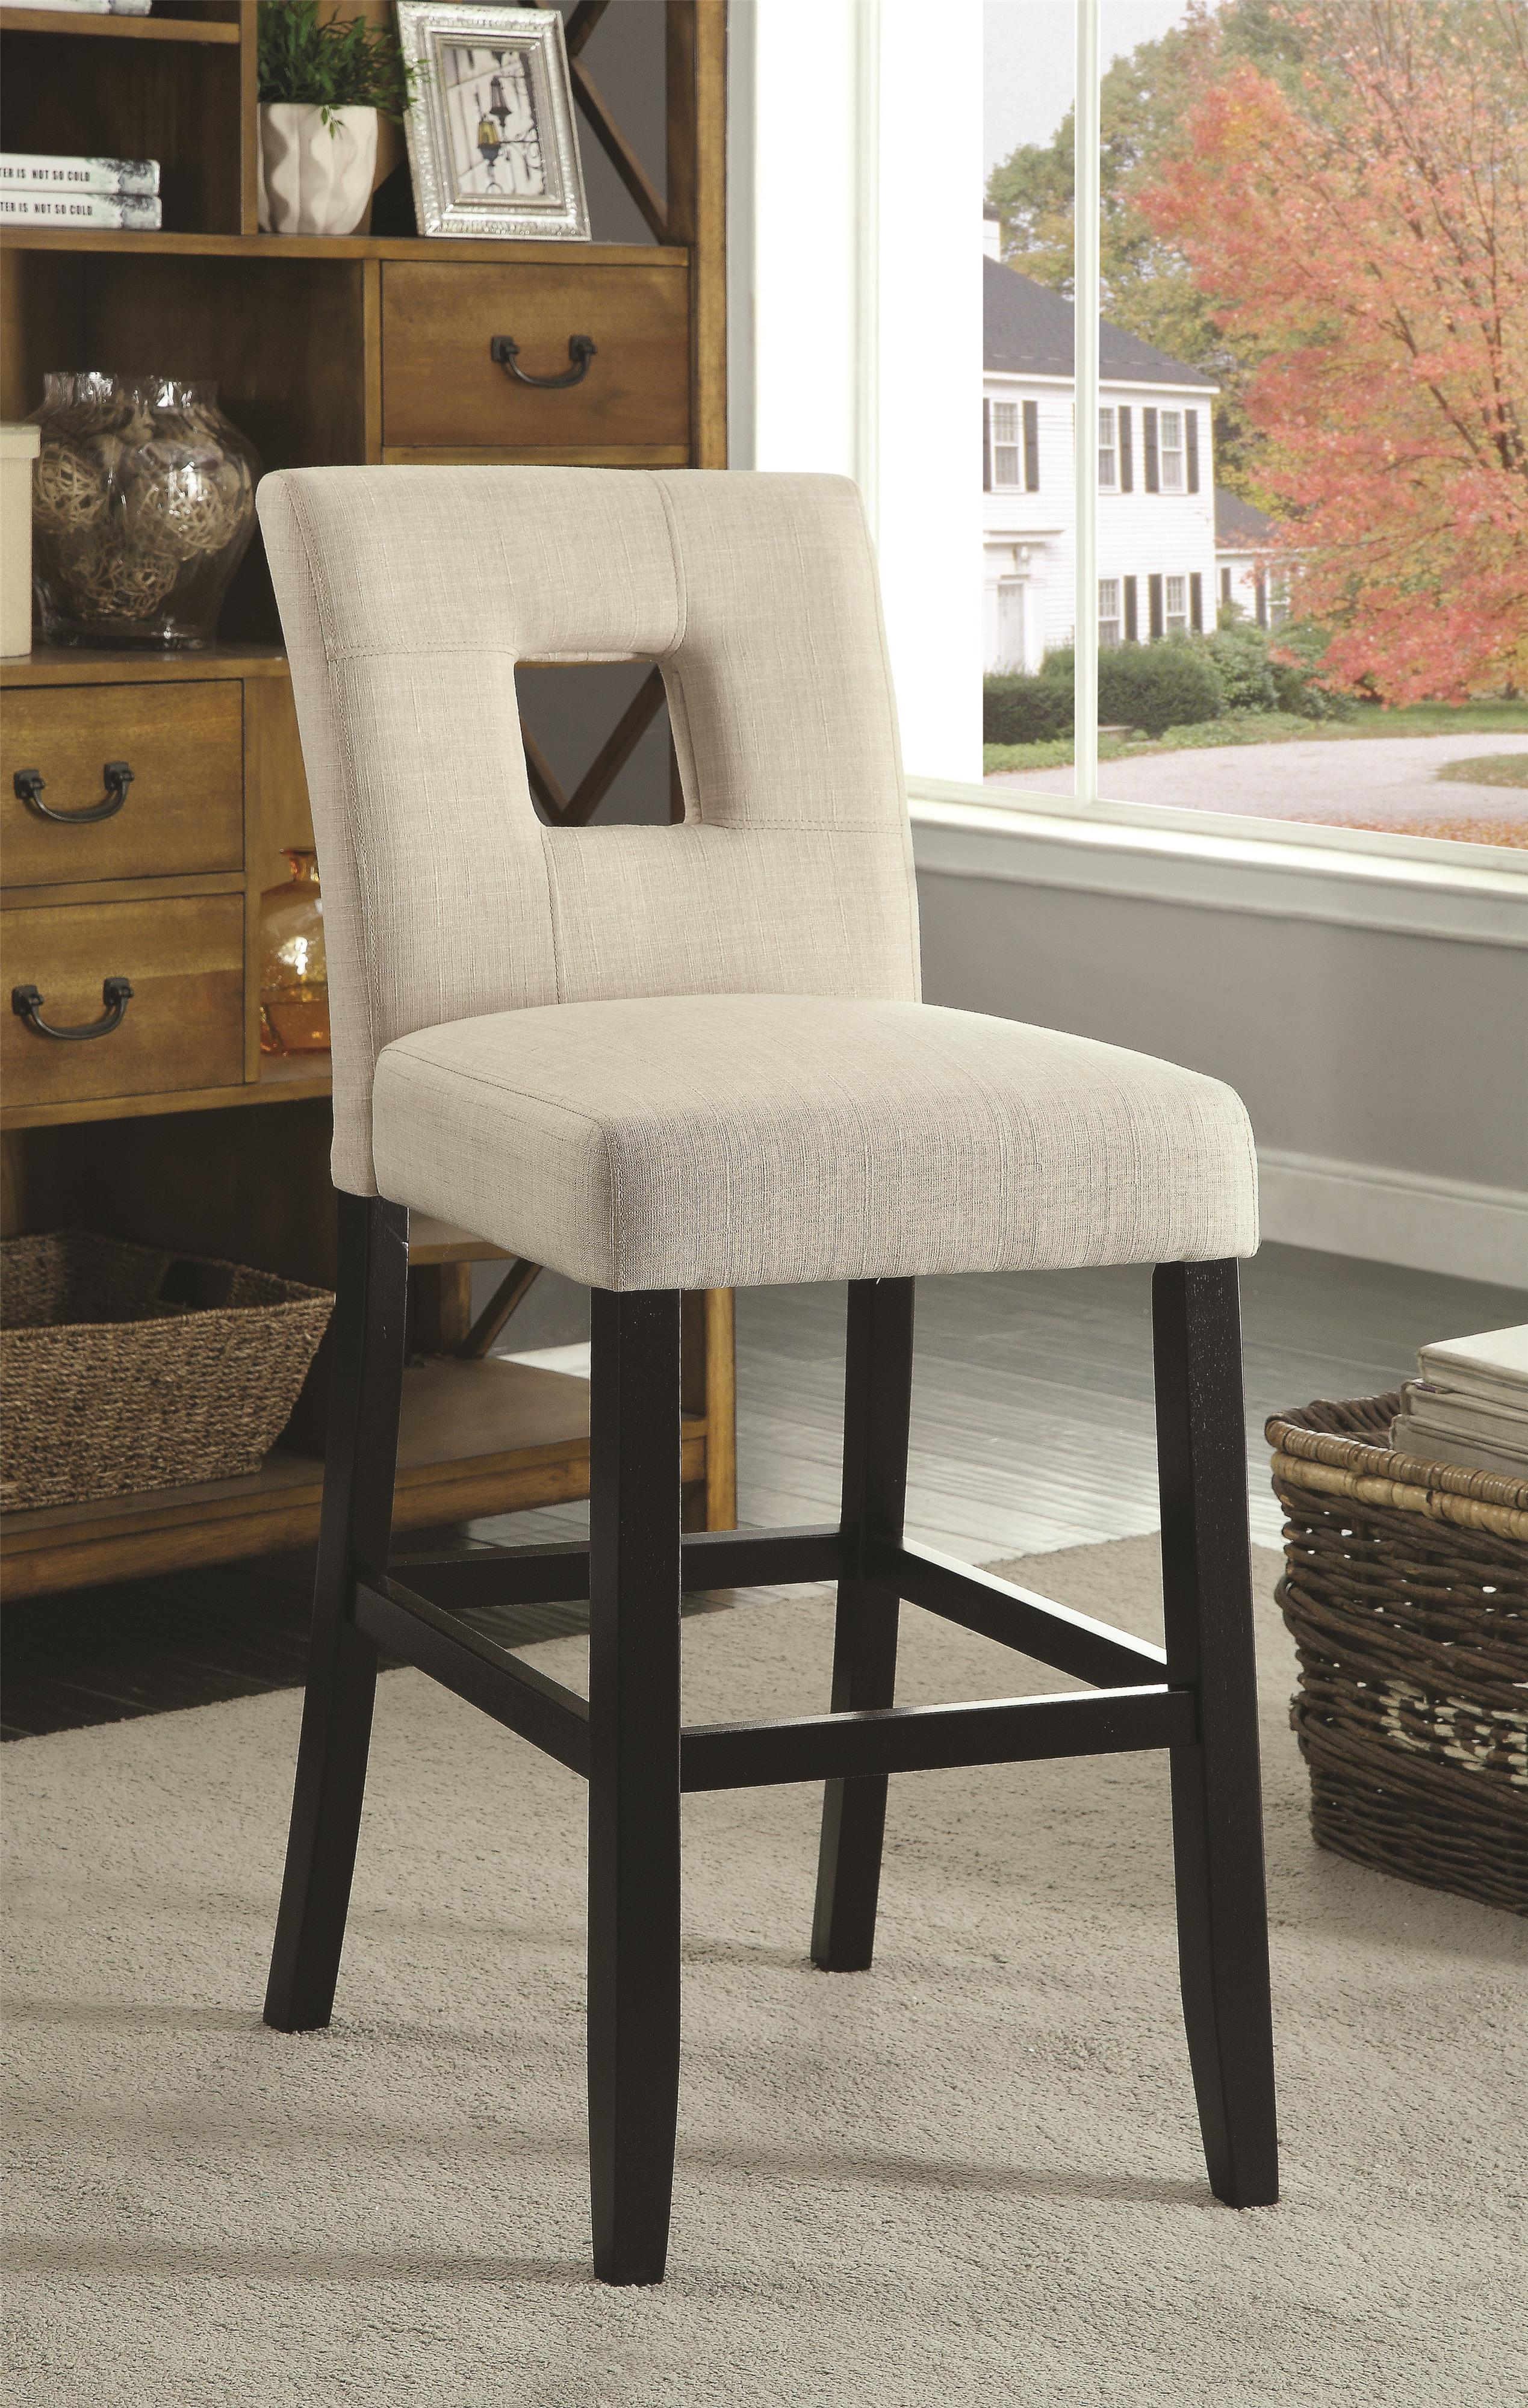 Coaster Andenne Counter Height Chair with Square Cutout in Seat